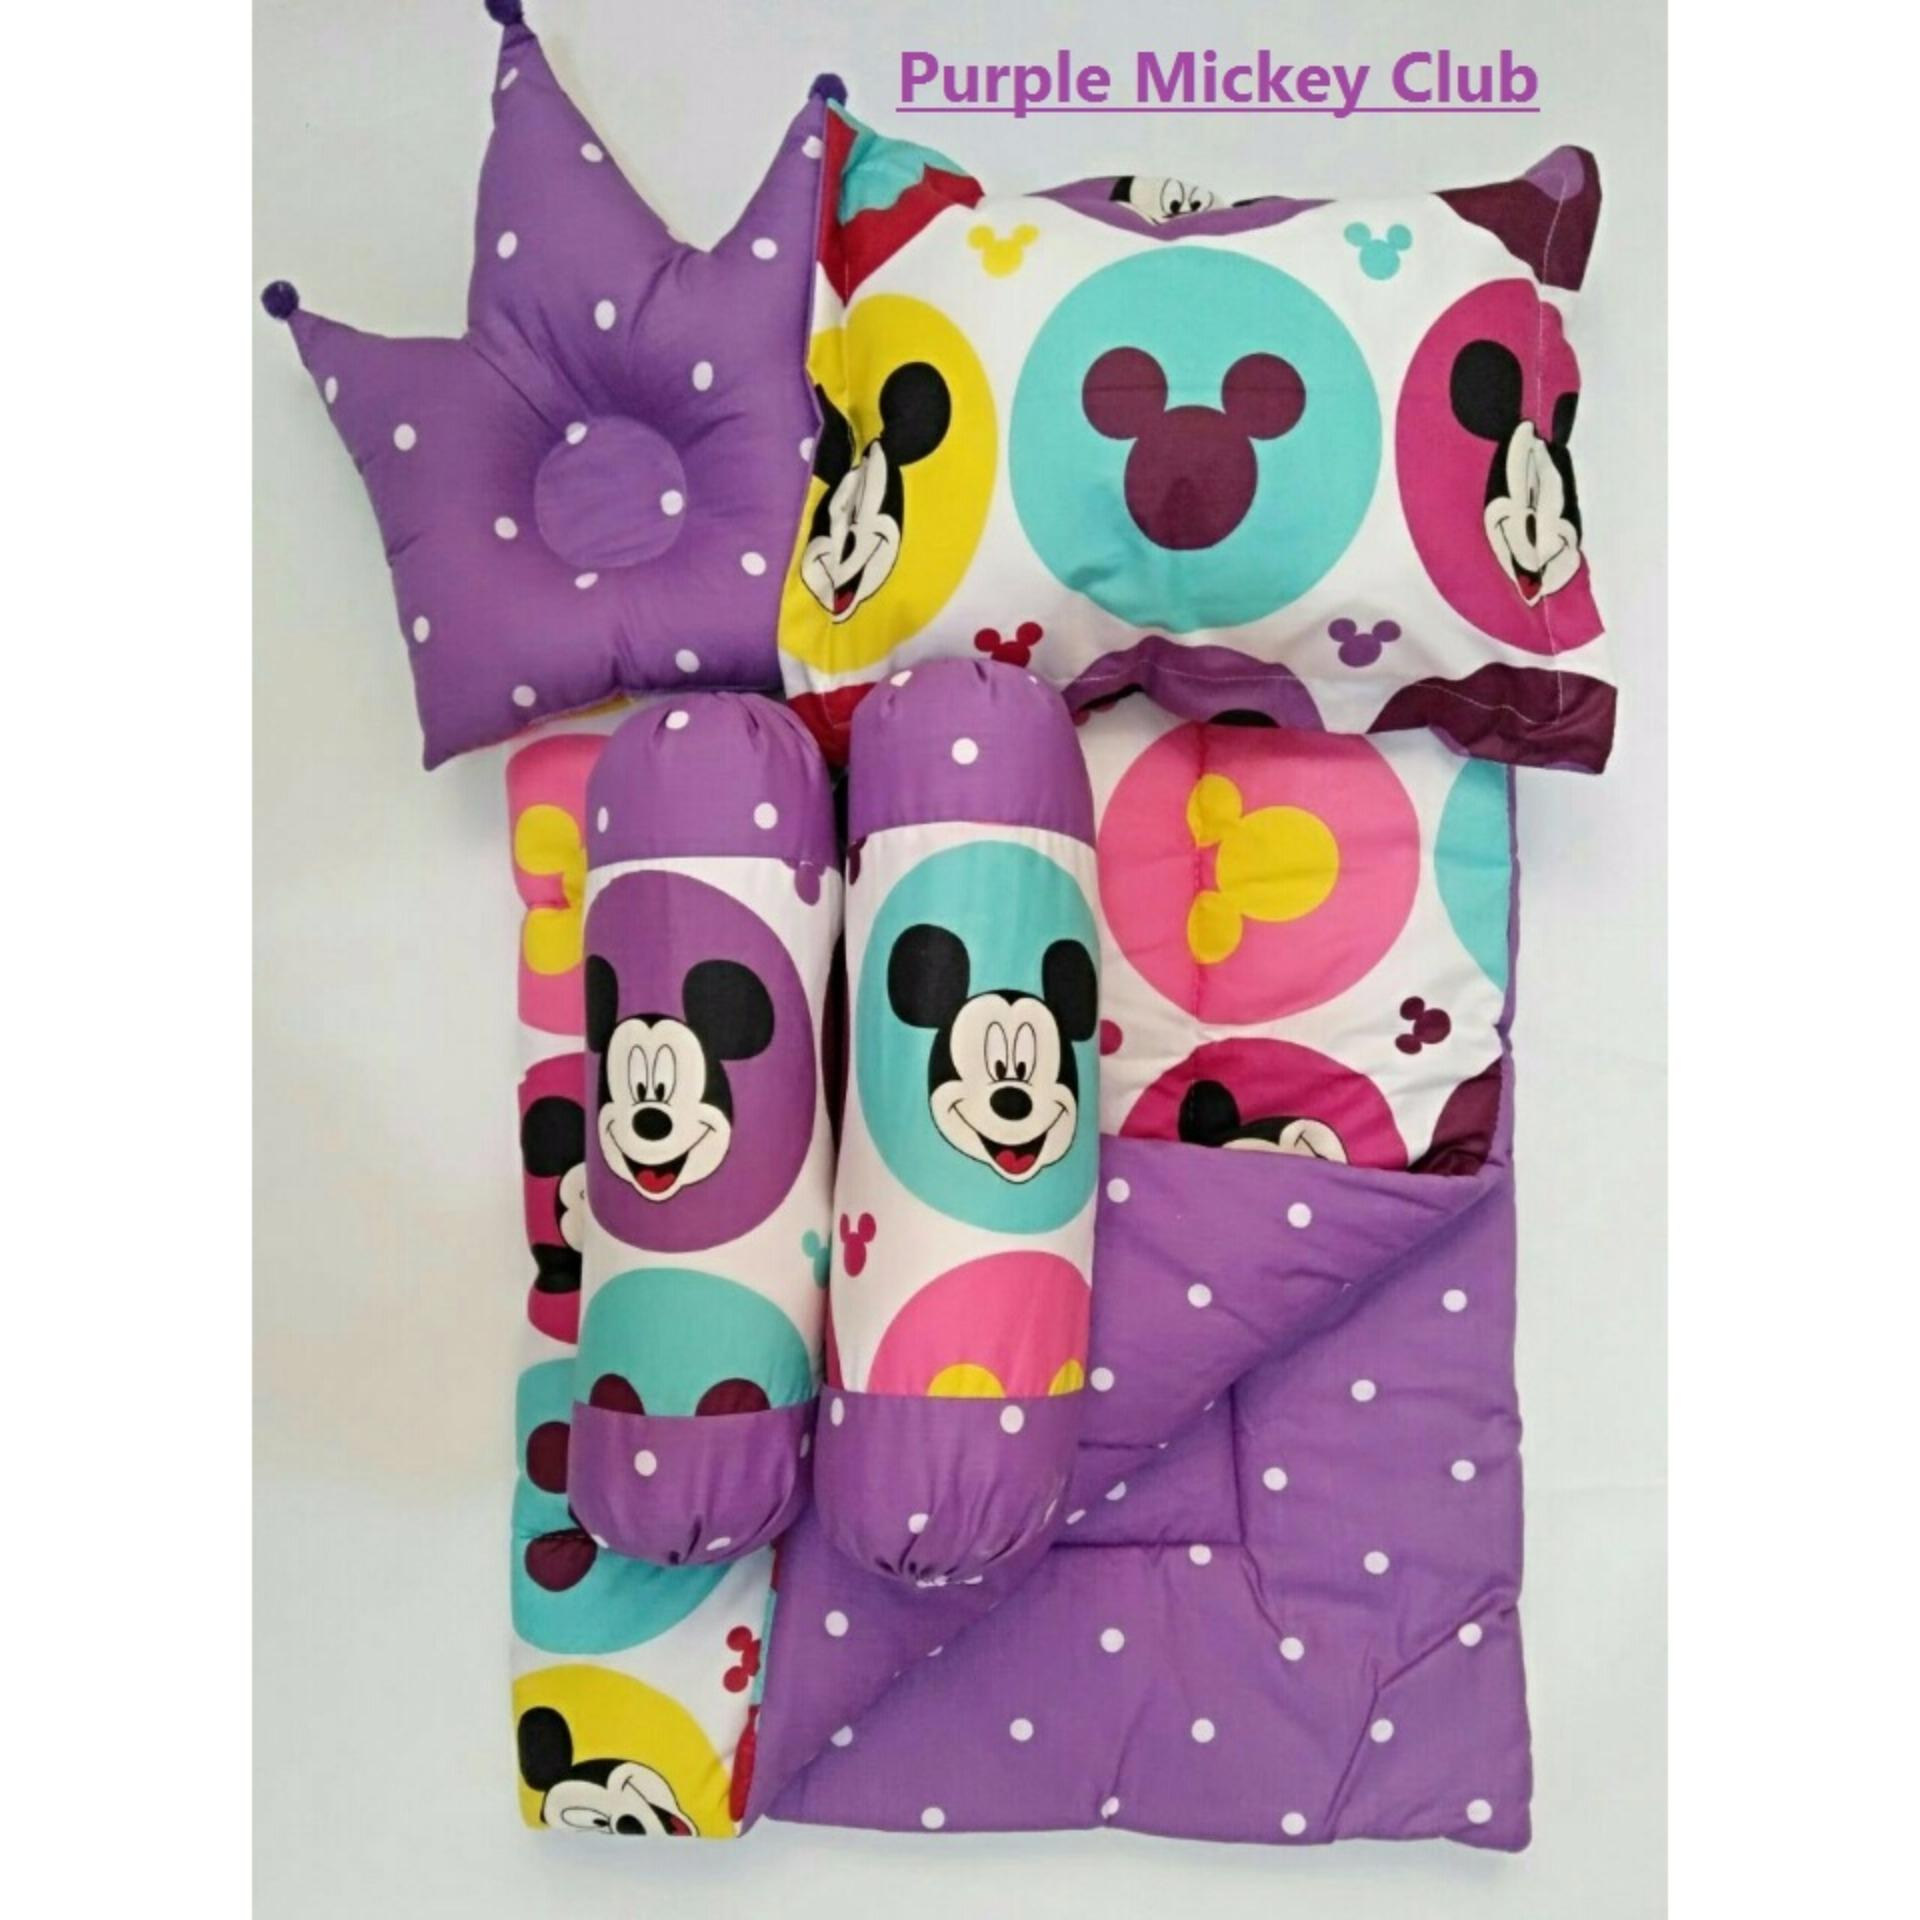 Baby Bed Set Sarung Lepas Bedcover Selimut Bantal Crown bbb Guling Alas Tidur cover Bayi - Purple Mickey Club